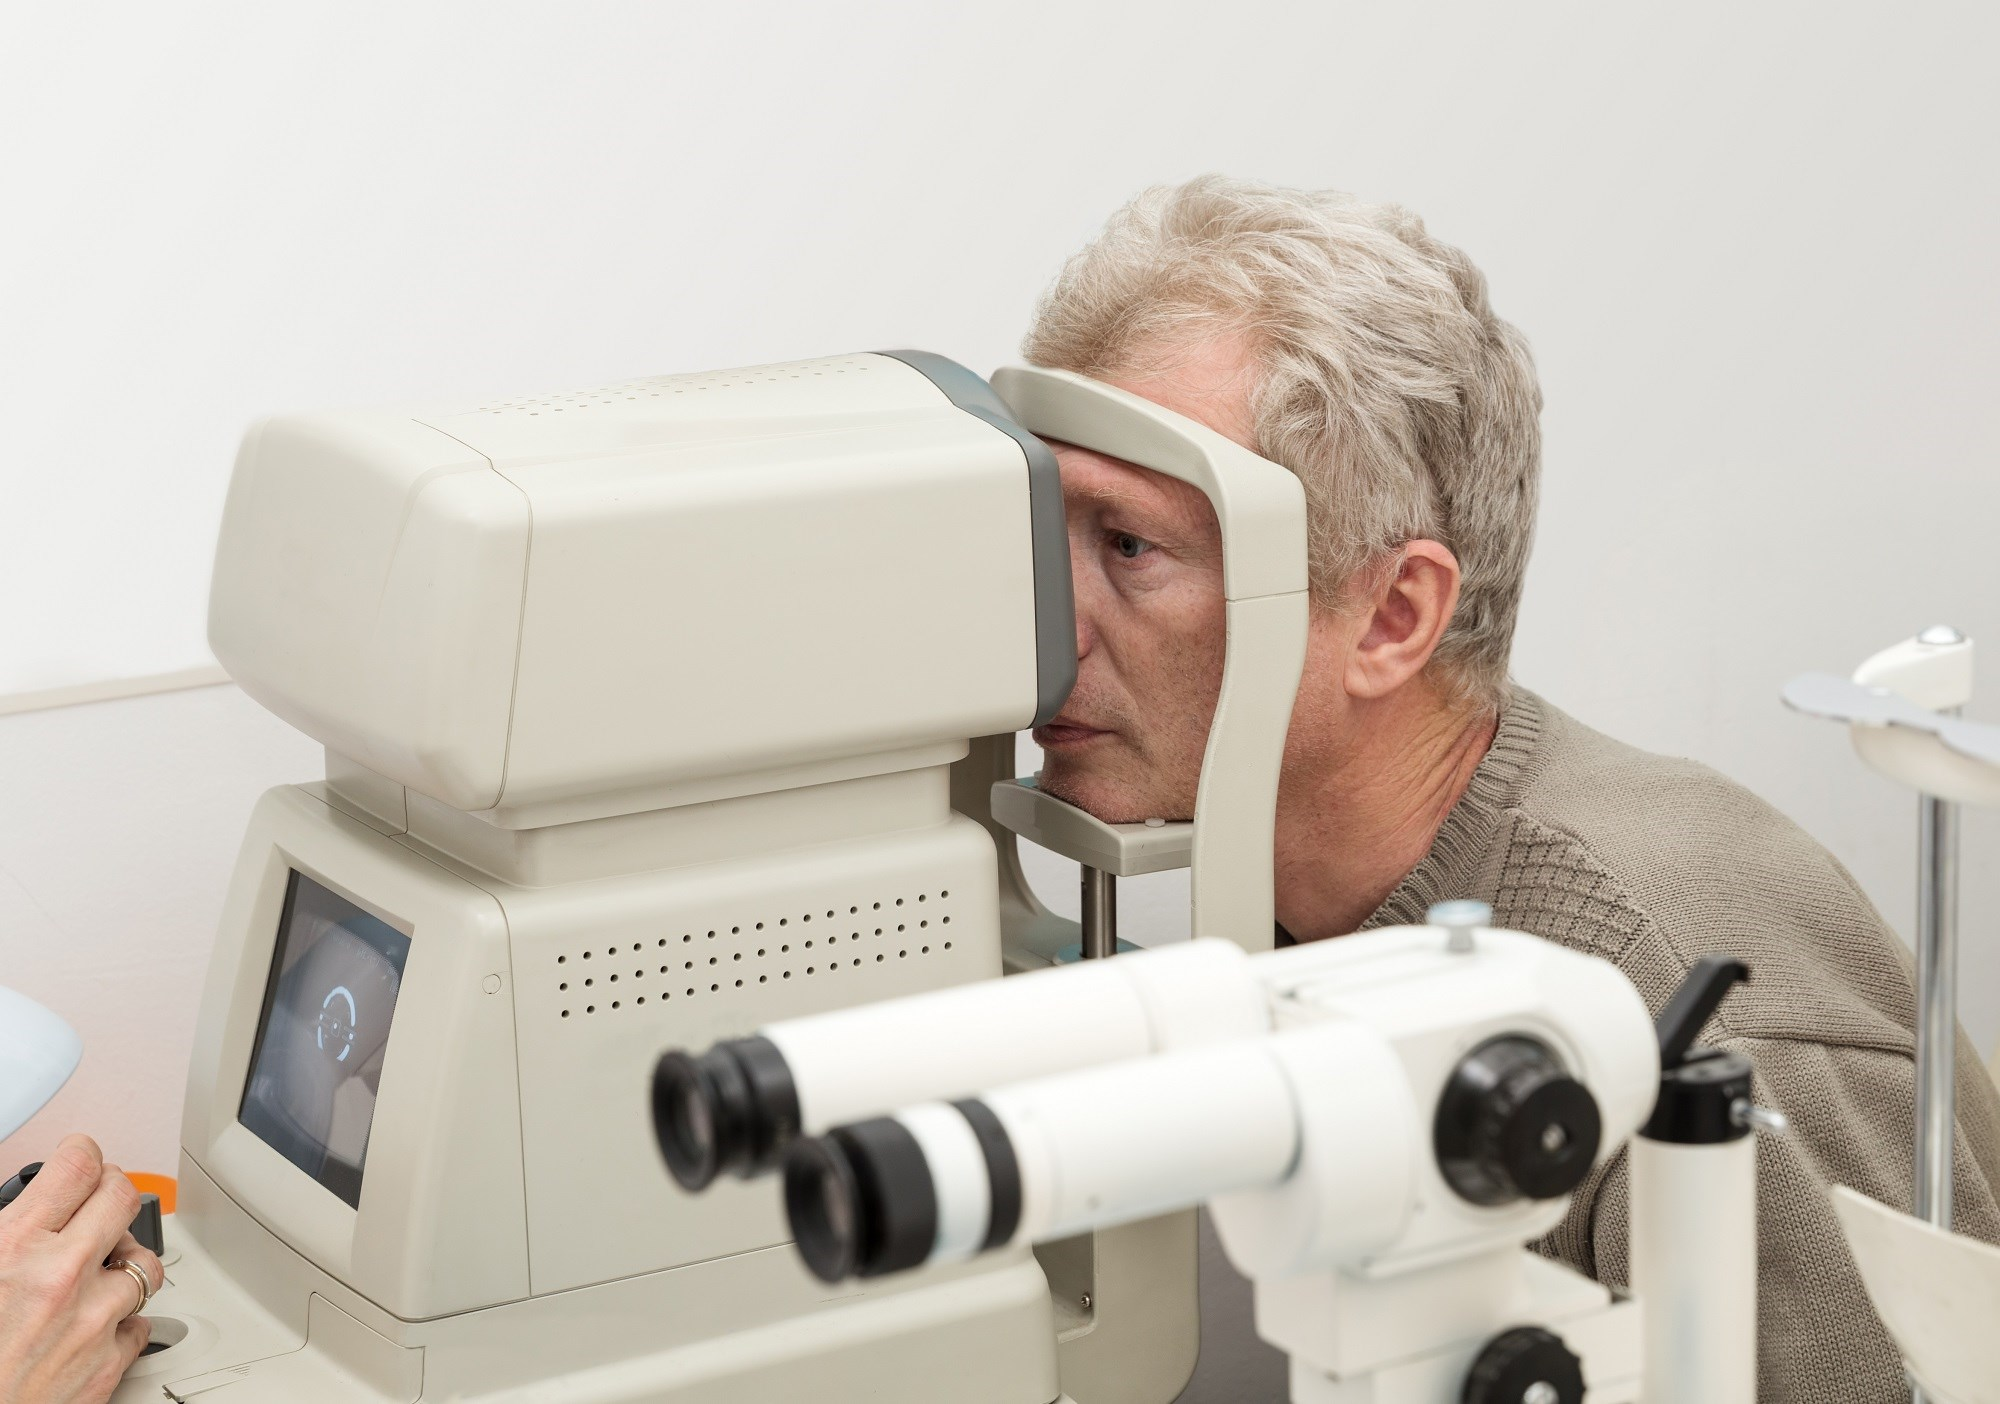 Measurement of the inner retinal layer thickness may be a good candidate biomarker for the detection of early Parkinson disease.